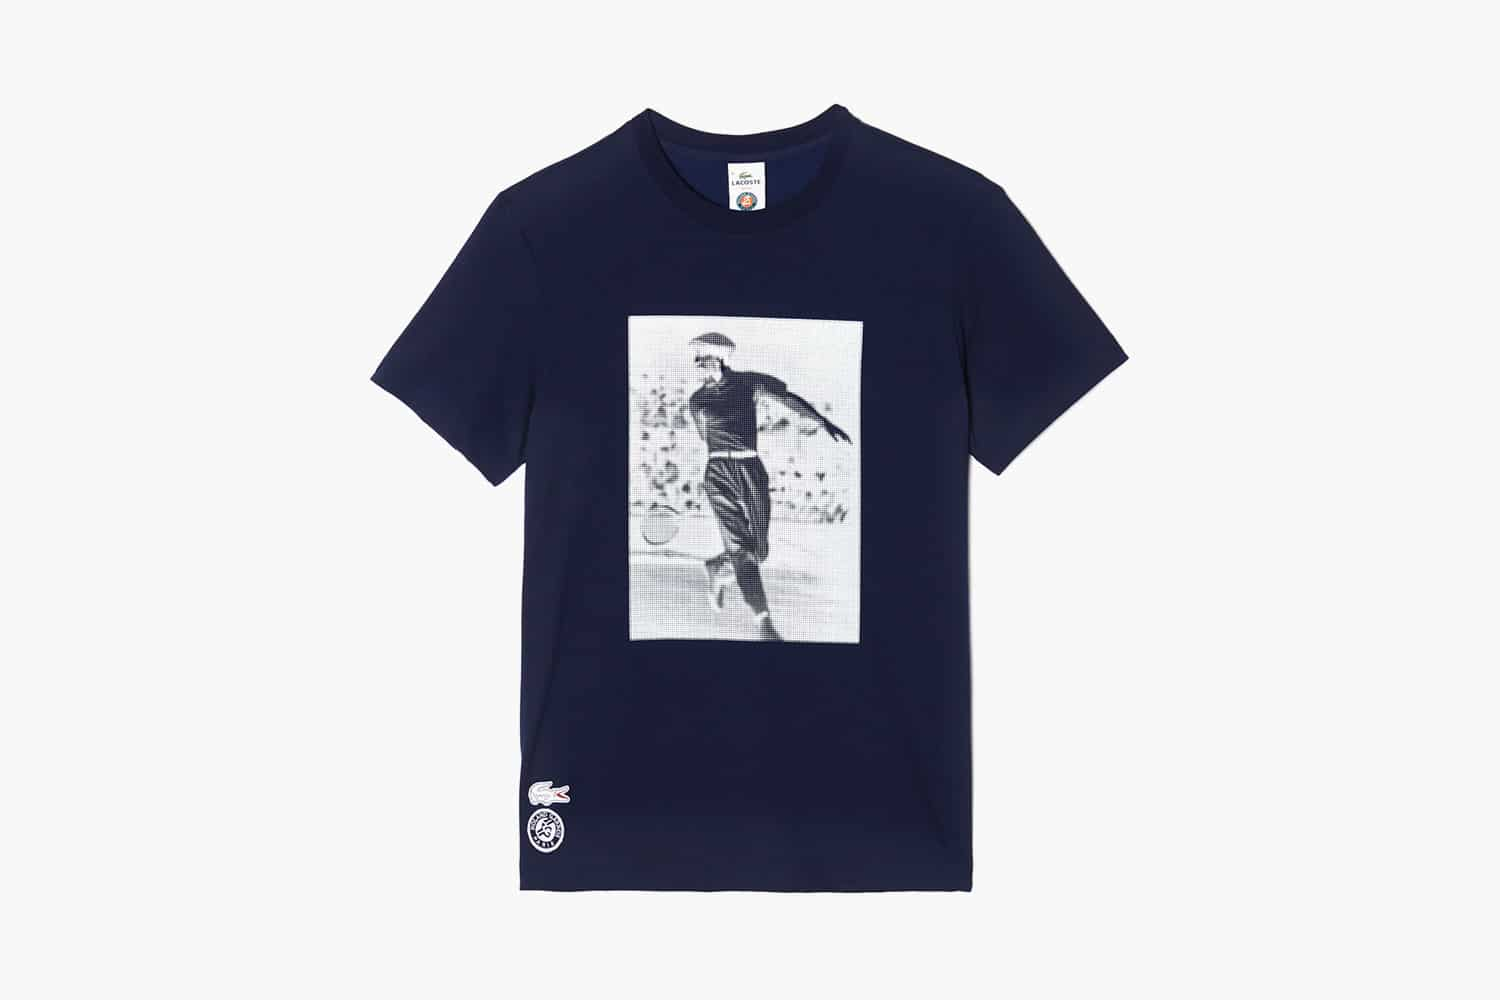 36a638faf7b For RG 2015 Lacoste create 2 collections  1 – was placed Rene Lacoste  stylized silhouette and 2-nd – text